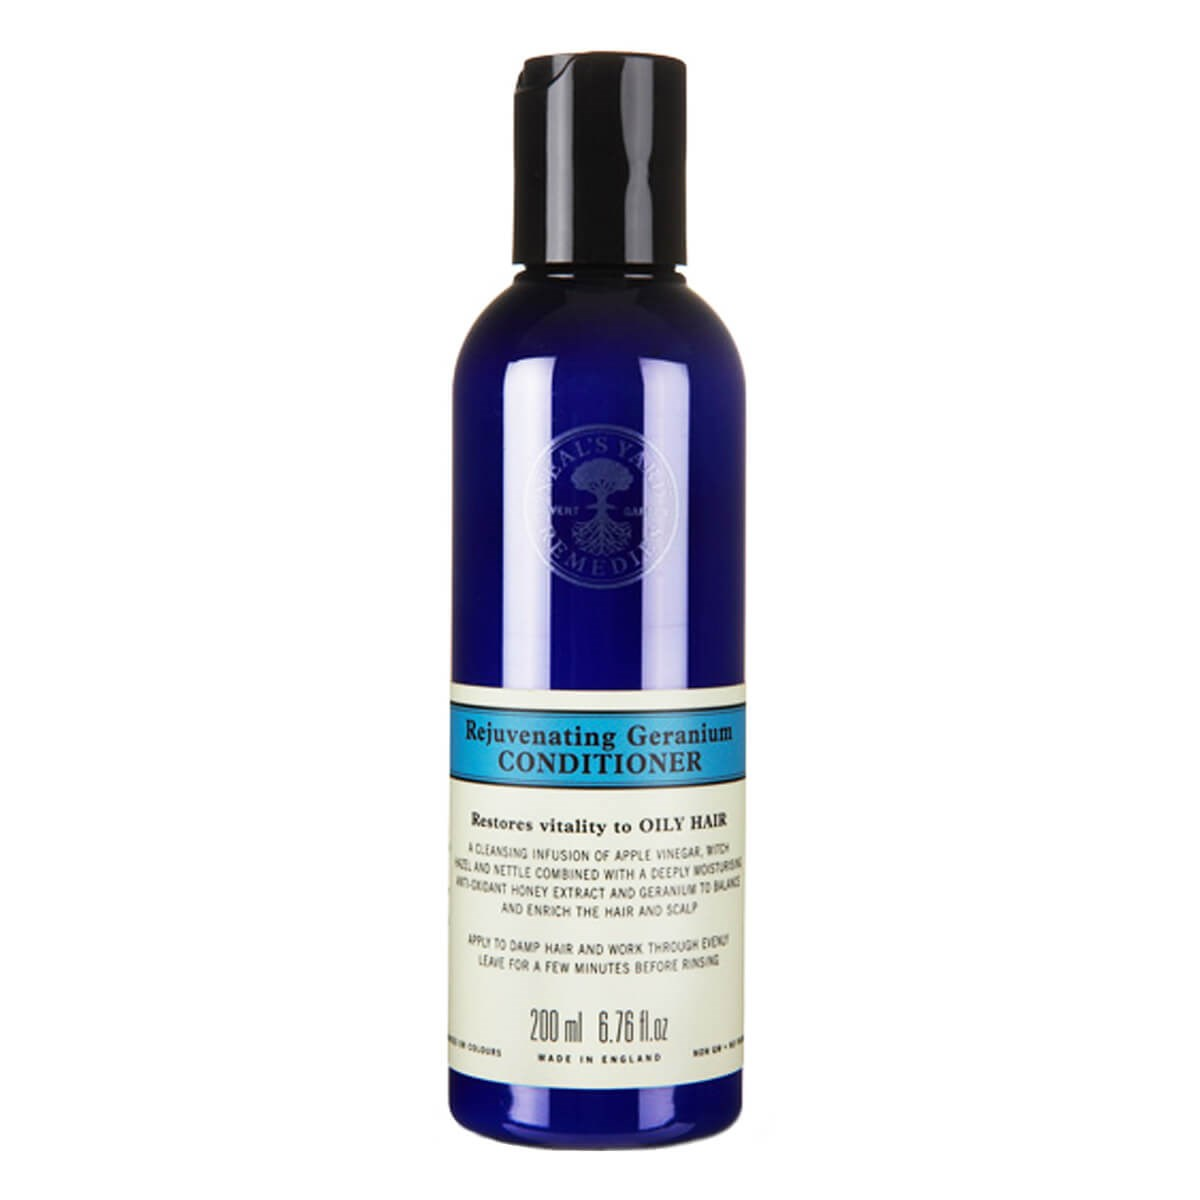 Neal's Yard Remedies Rejuvenating Geranium Conditioner